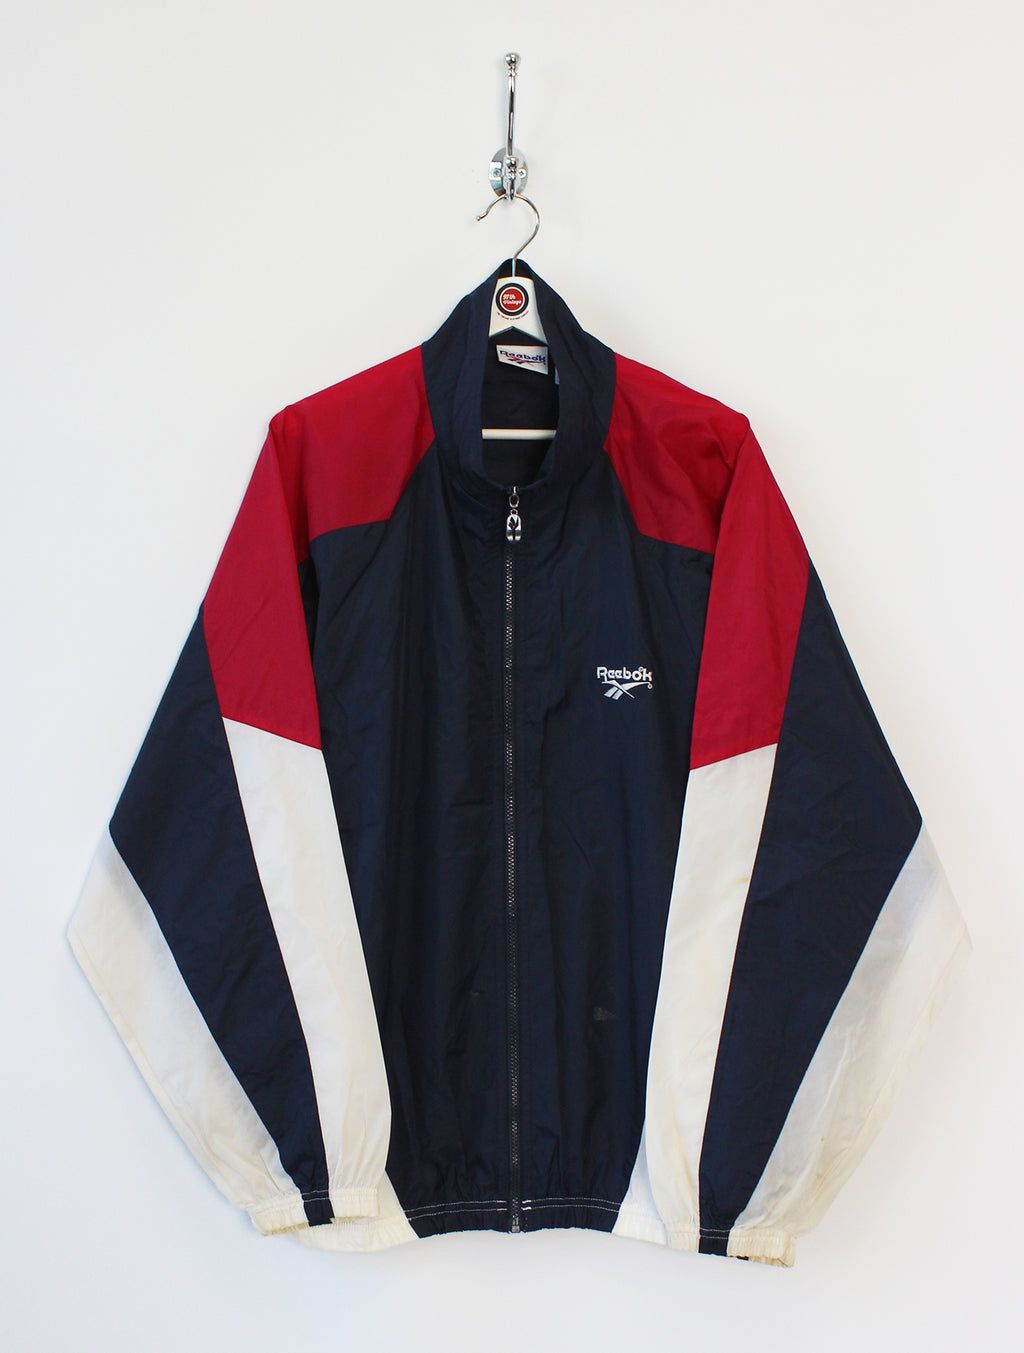 Reebok Shell Suit Jacket (XL)